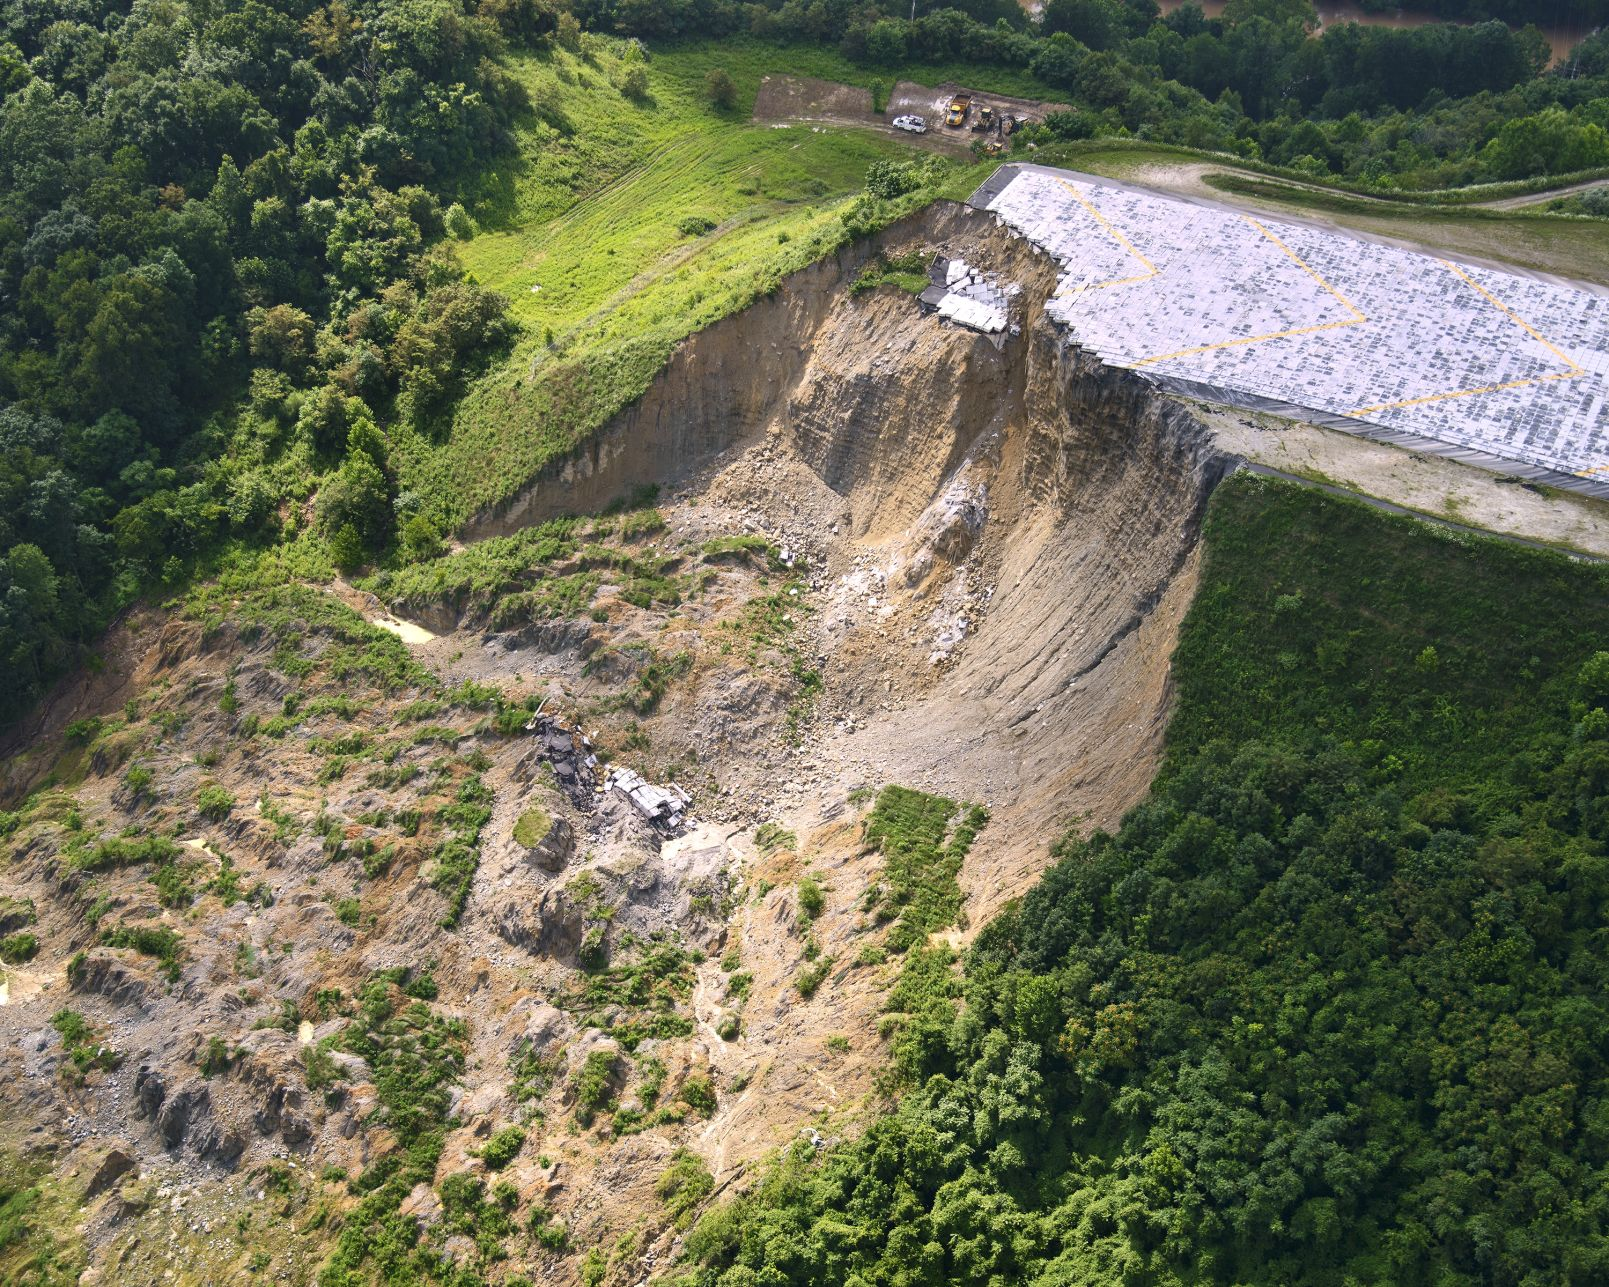 Yeager slope failure cost tagged at 18